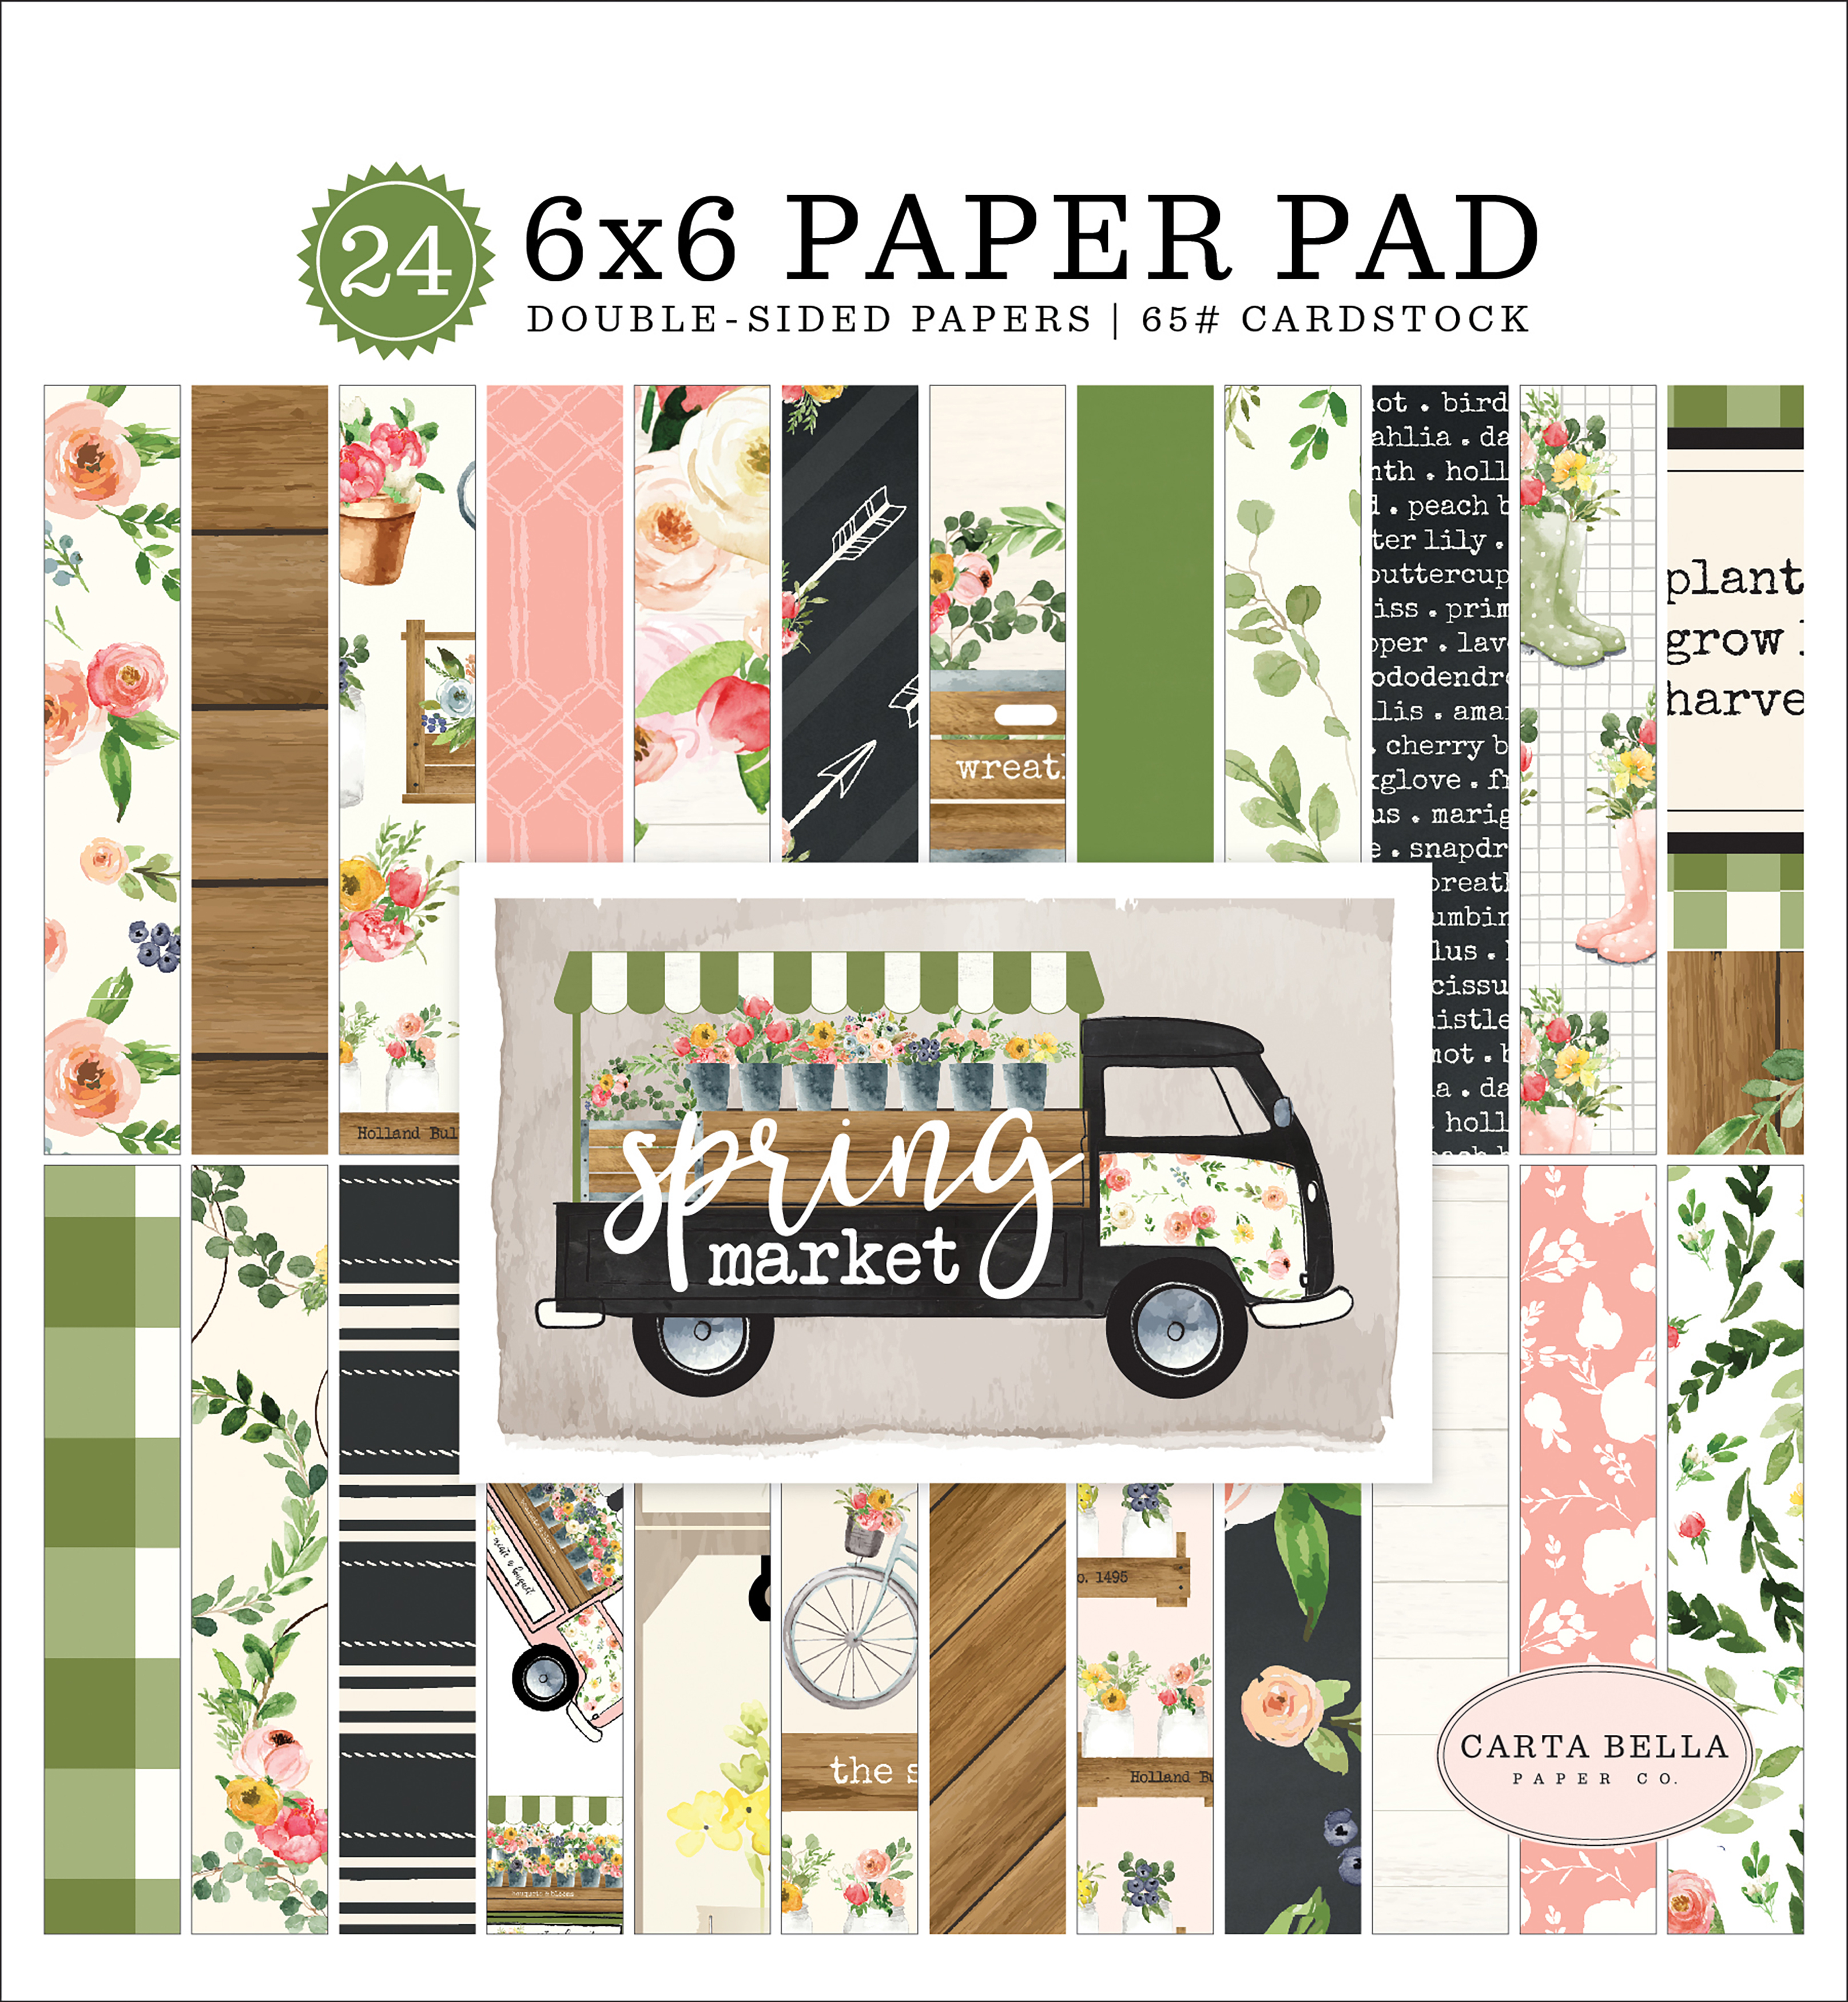 Carta Bella Double-Sided Paper Pad 6X6 24/Pkg-Spring Market, 12 Designs/2 Each